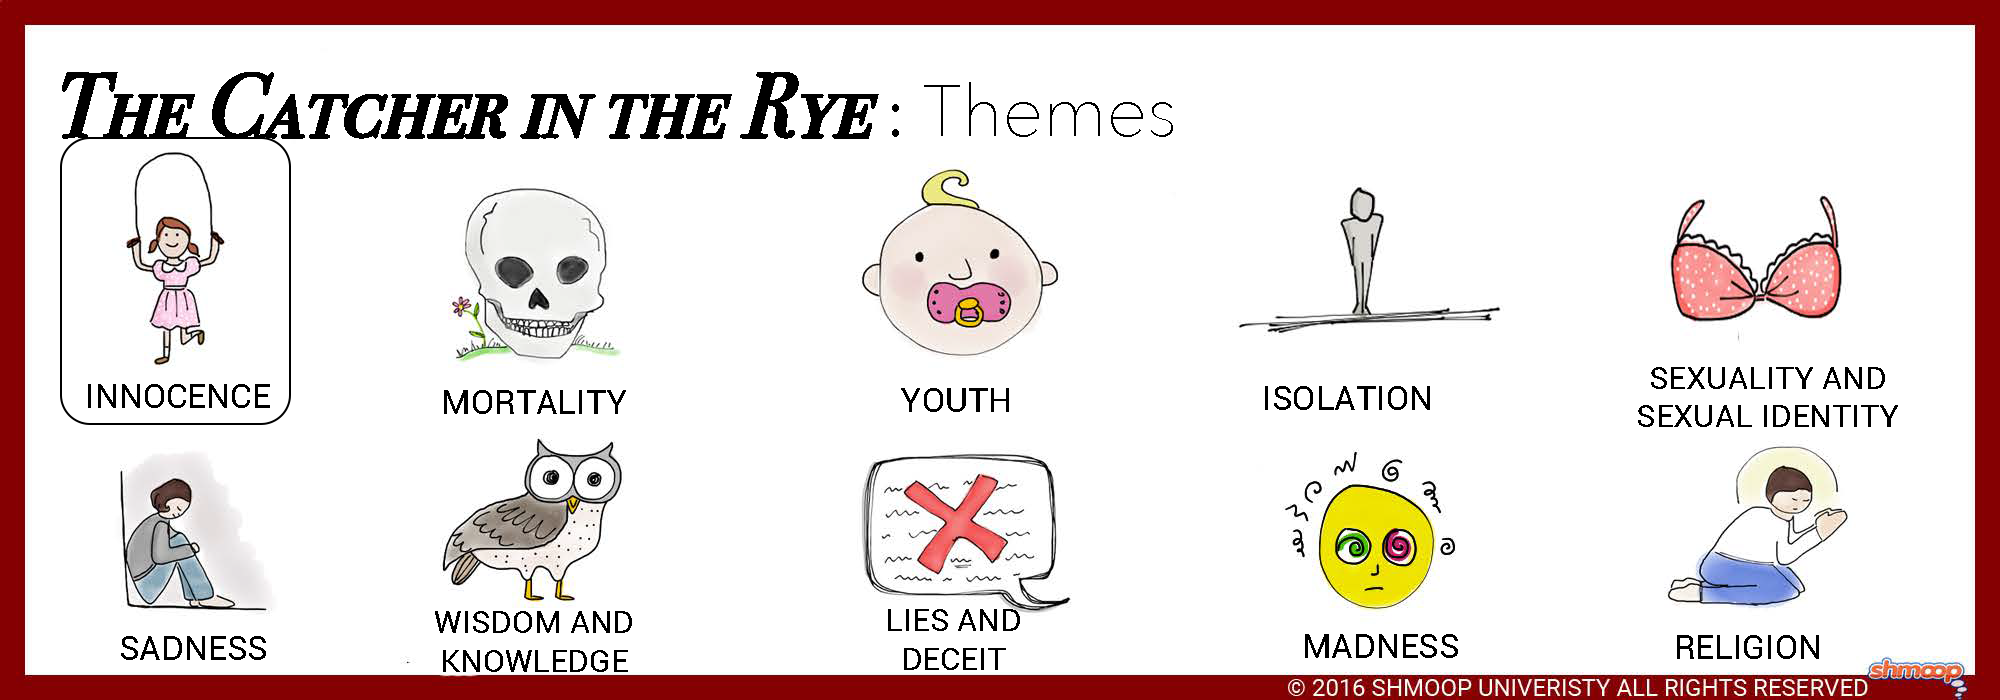 The Catcher in the Rye Theme of Innocence